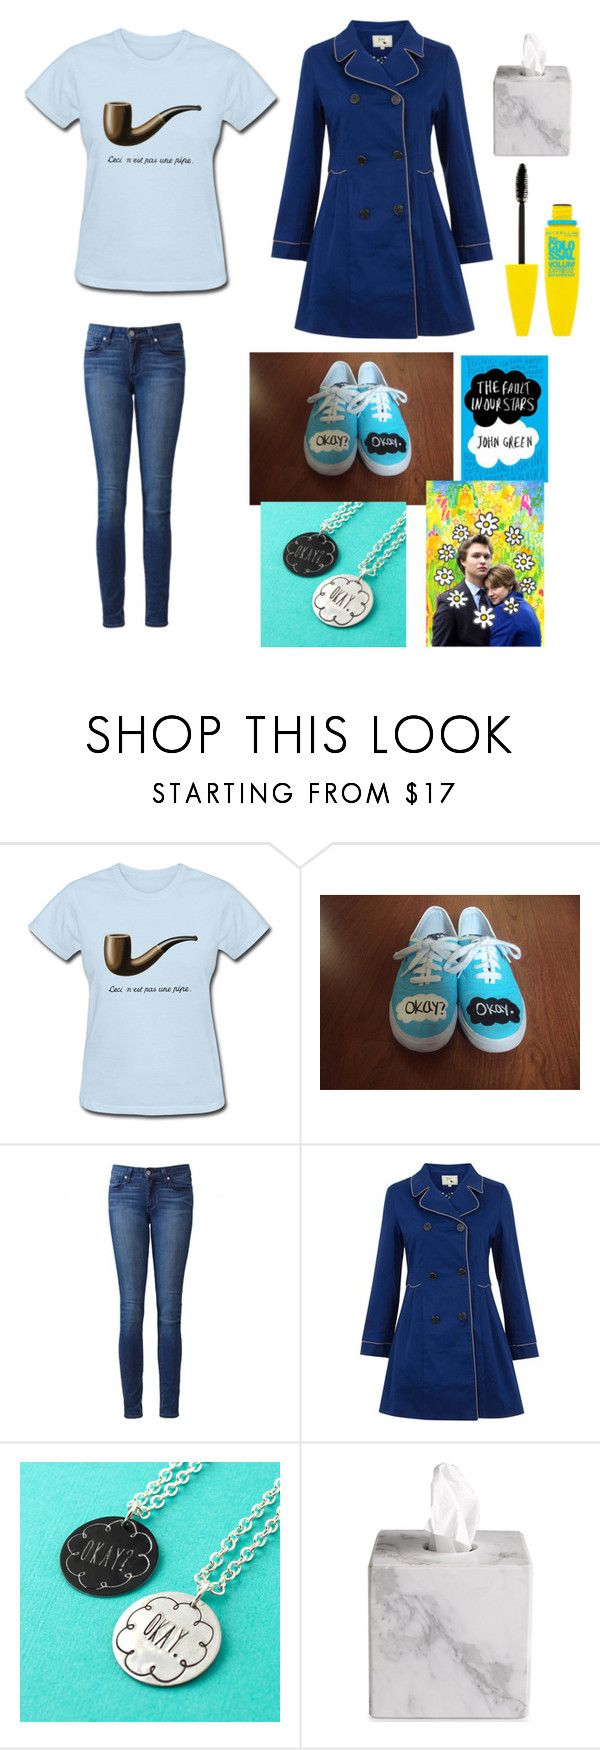 """Hazel grace's outfit/ Tfios stuff"" by ginaisanerd ❤ liked on Polyvore featuring N'Est Pas, Paige Denim, Yumi, Waterworks and Maybelline"